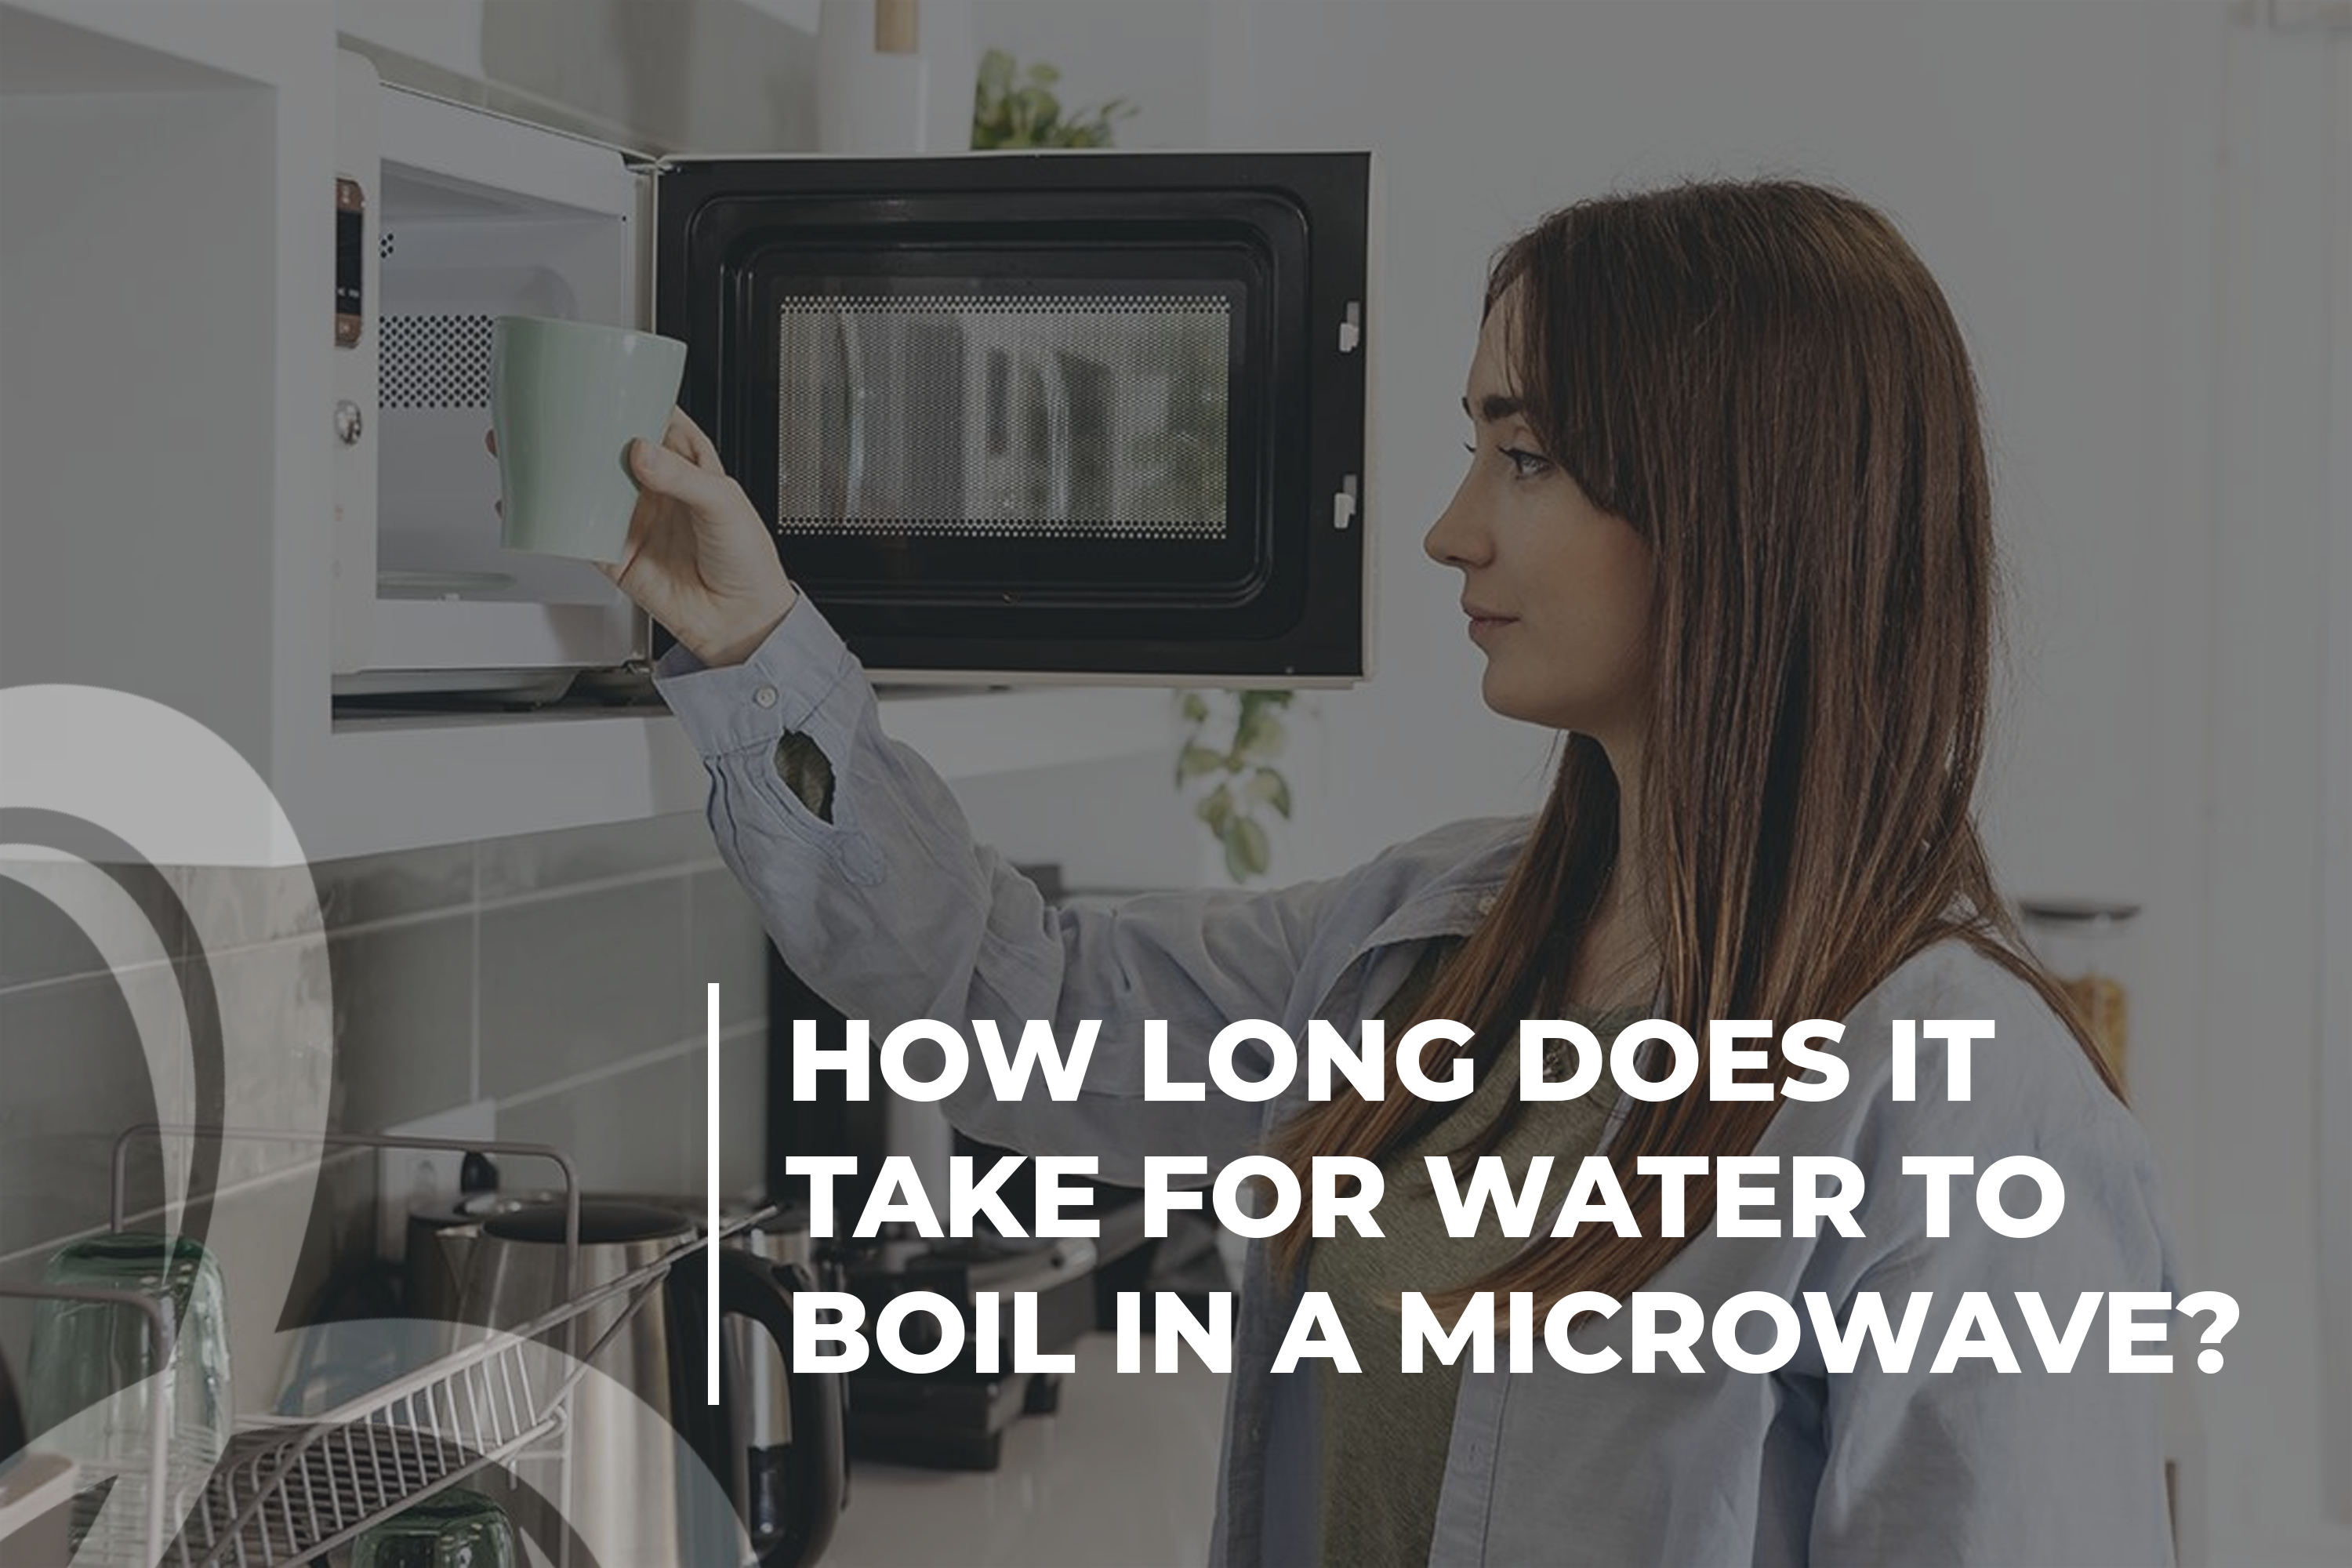 How long does it take for water to boil in a microwave